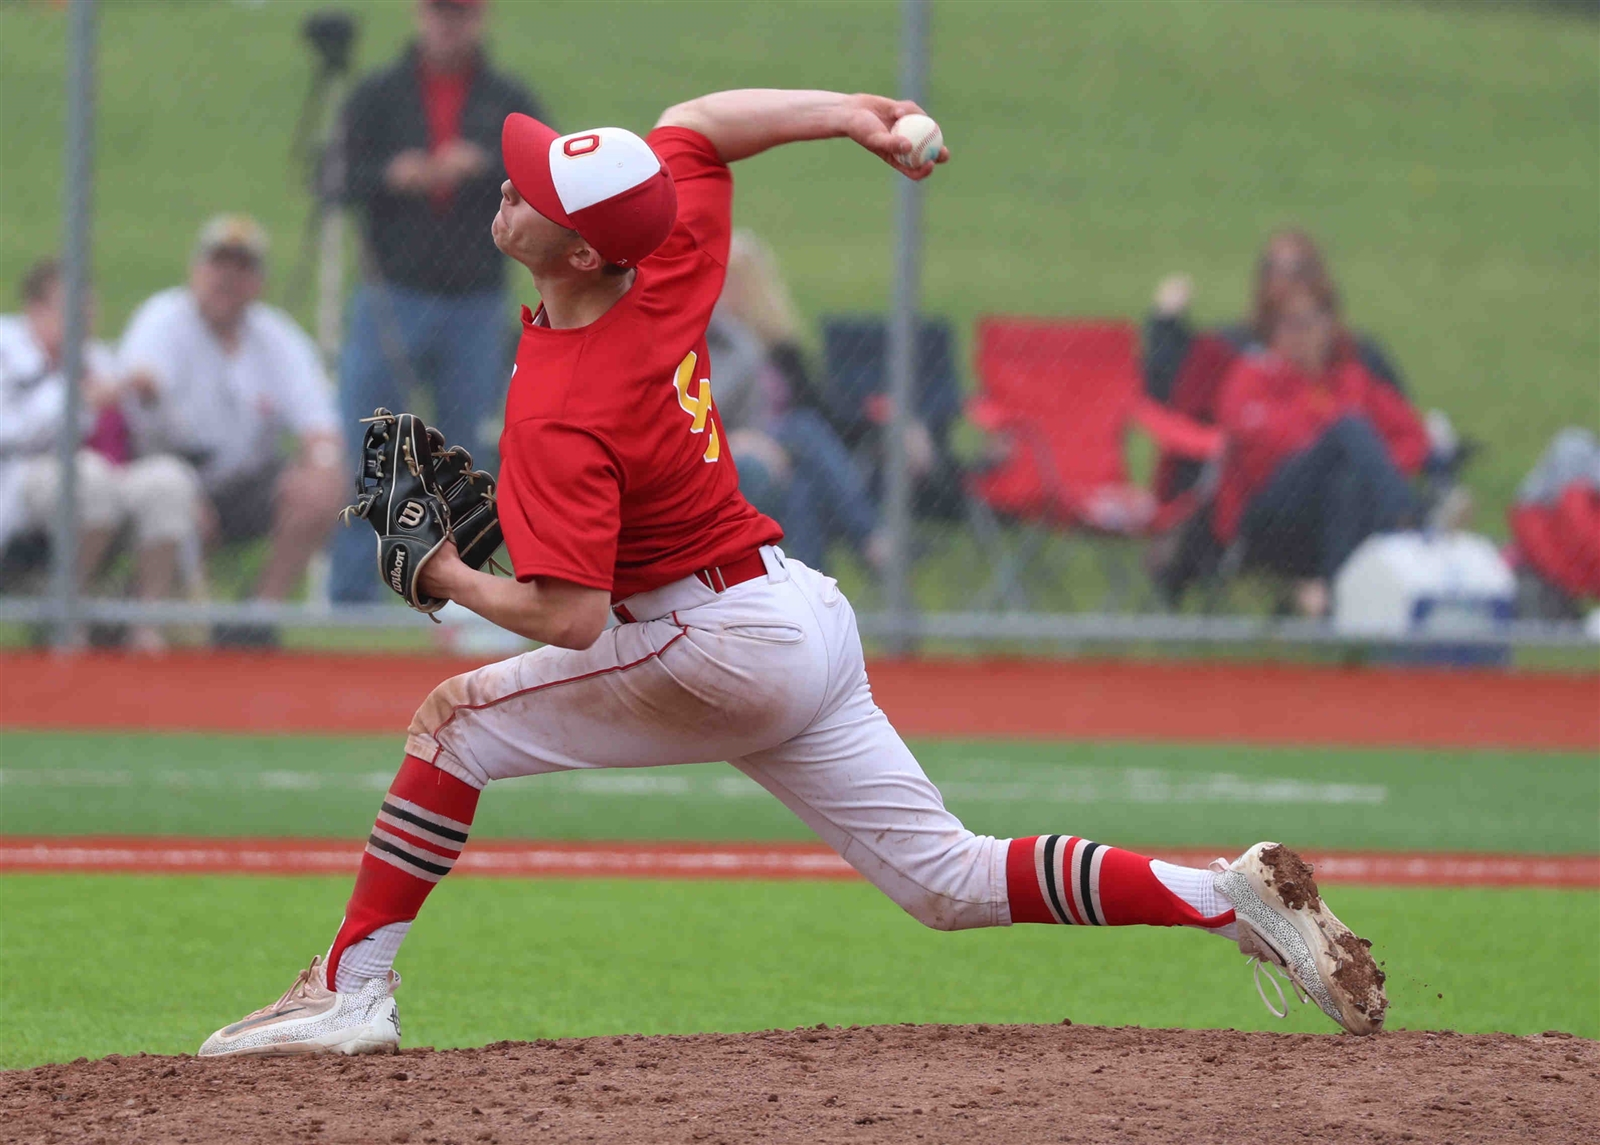 Olean's Bryan Bizzaro throws a pitch in the second inning.